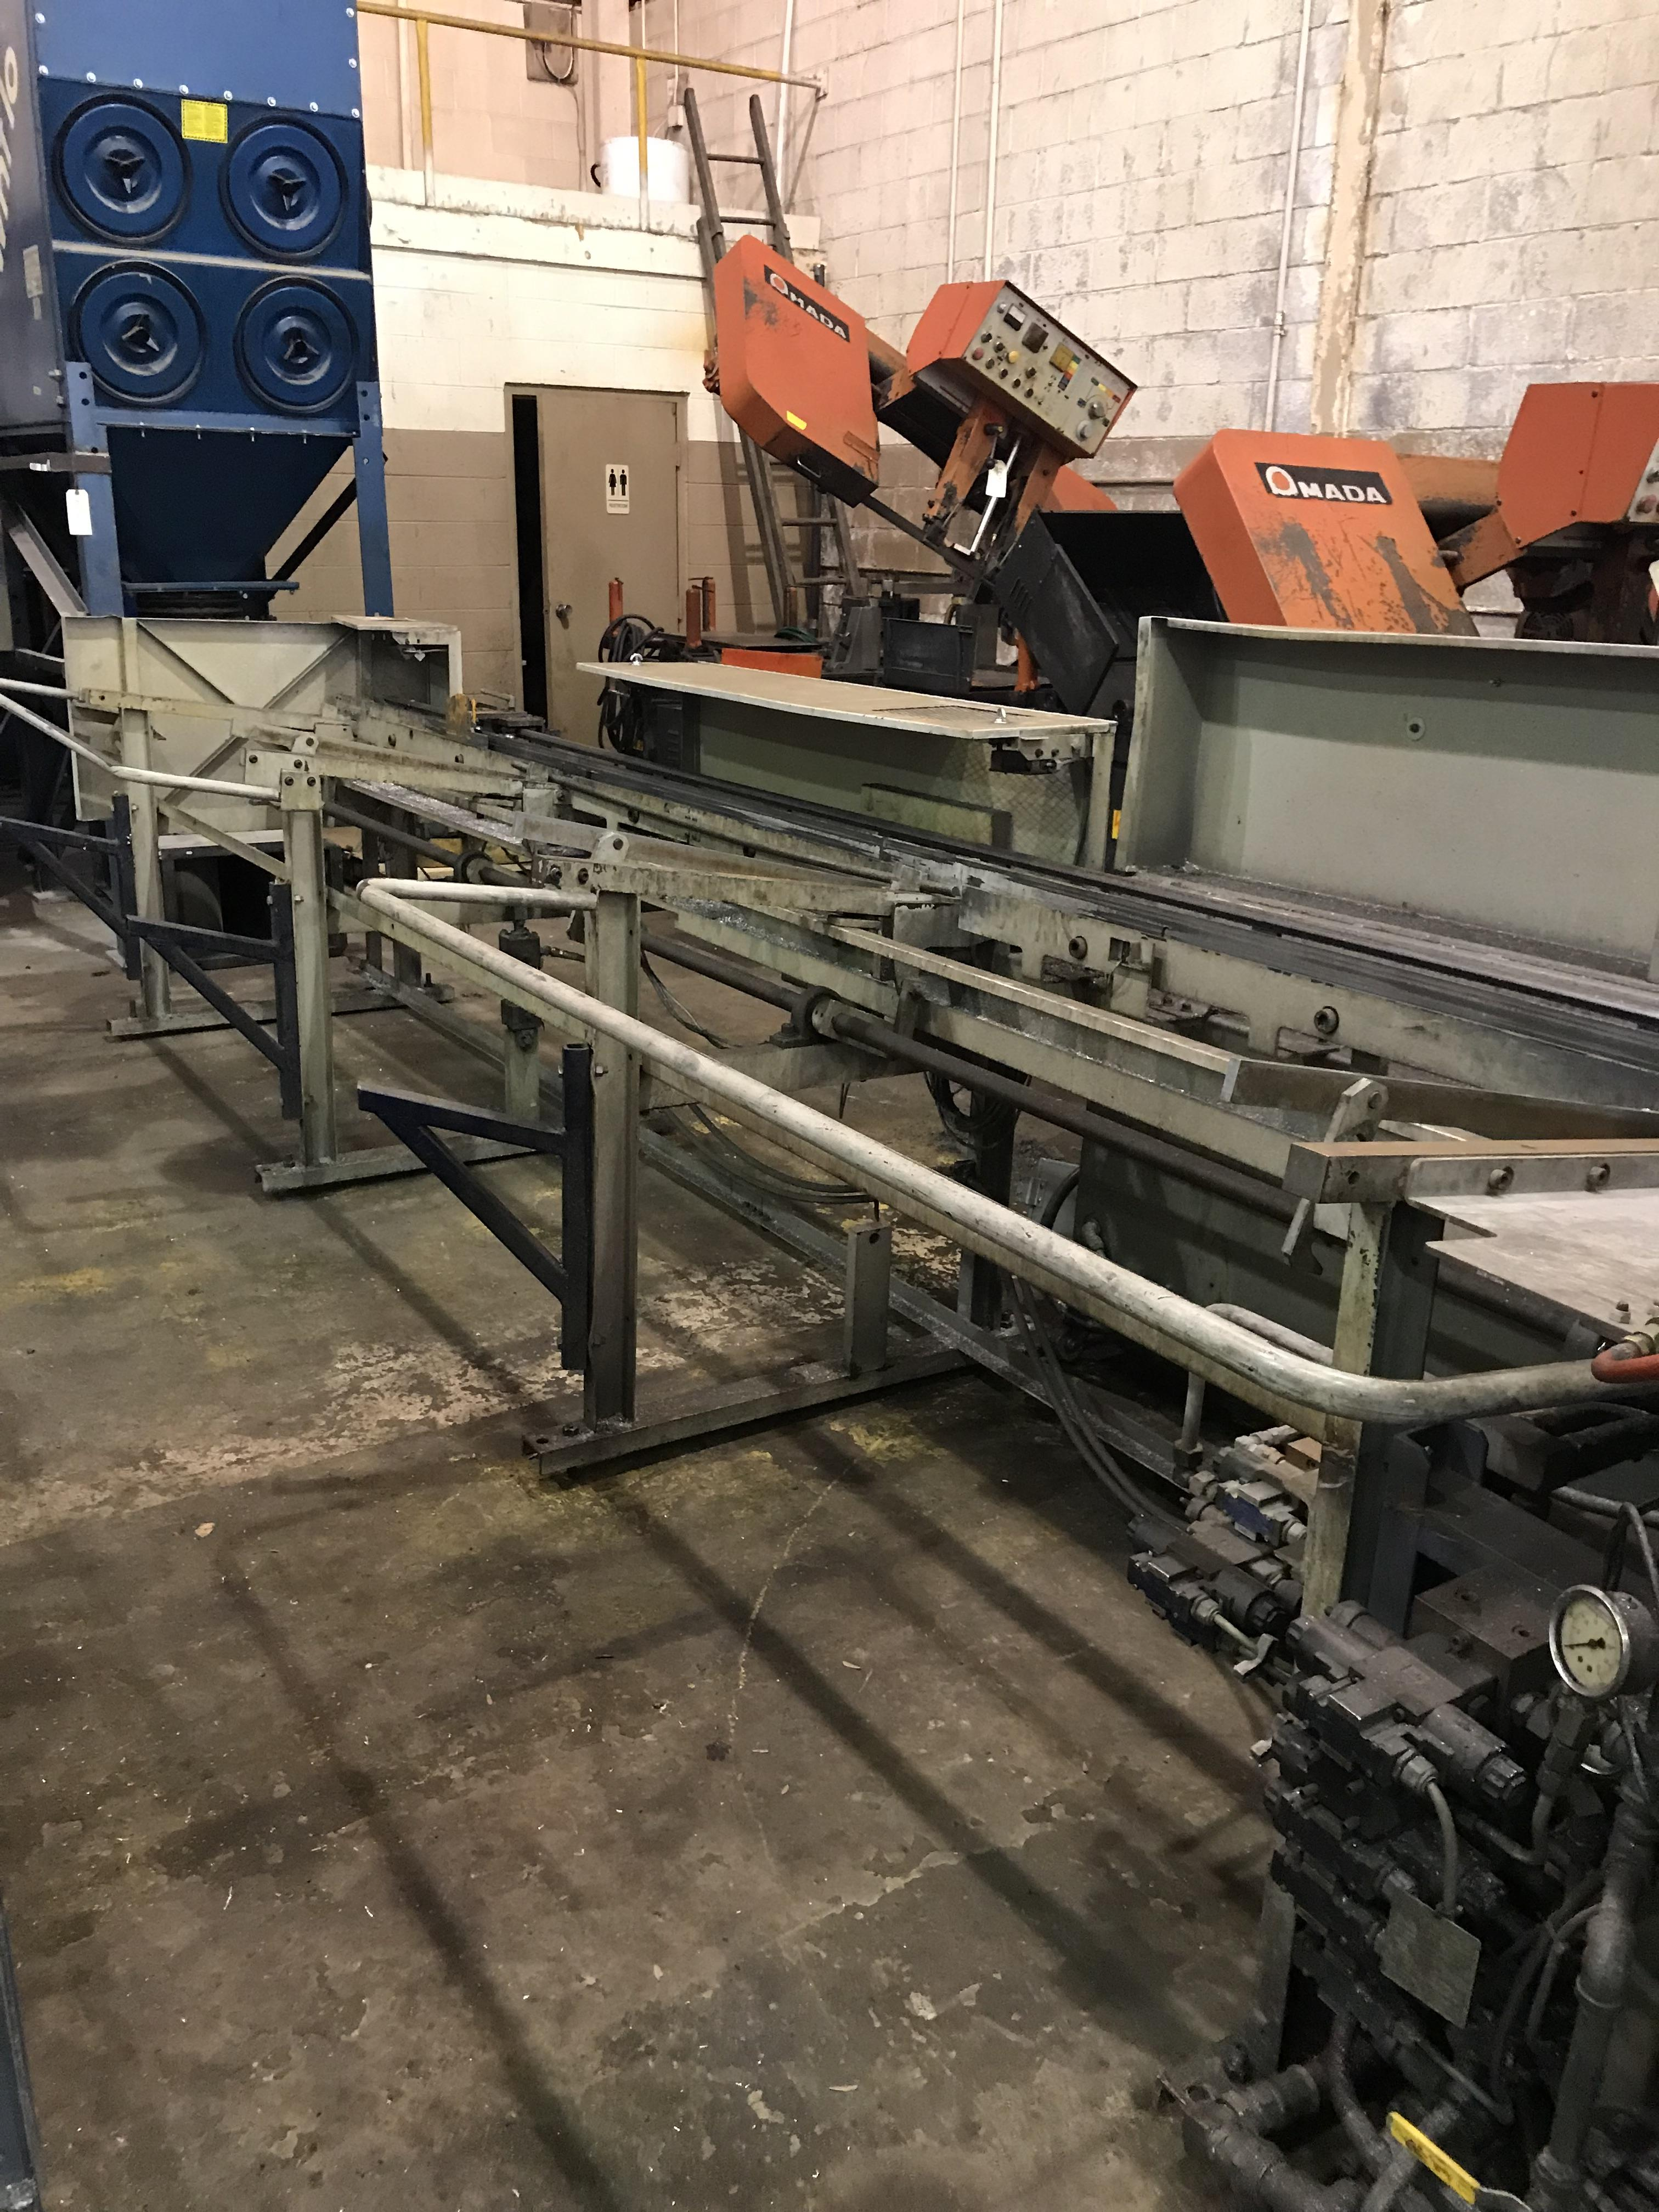 USED TSUNE FULLY AUTOMATIC NON-FERROUS CIRCULAR SAW WITH INCLINE LOADING RACK , Model TK5M90PL, Year 2002, Stock No. 10599